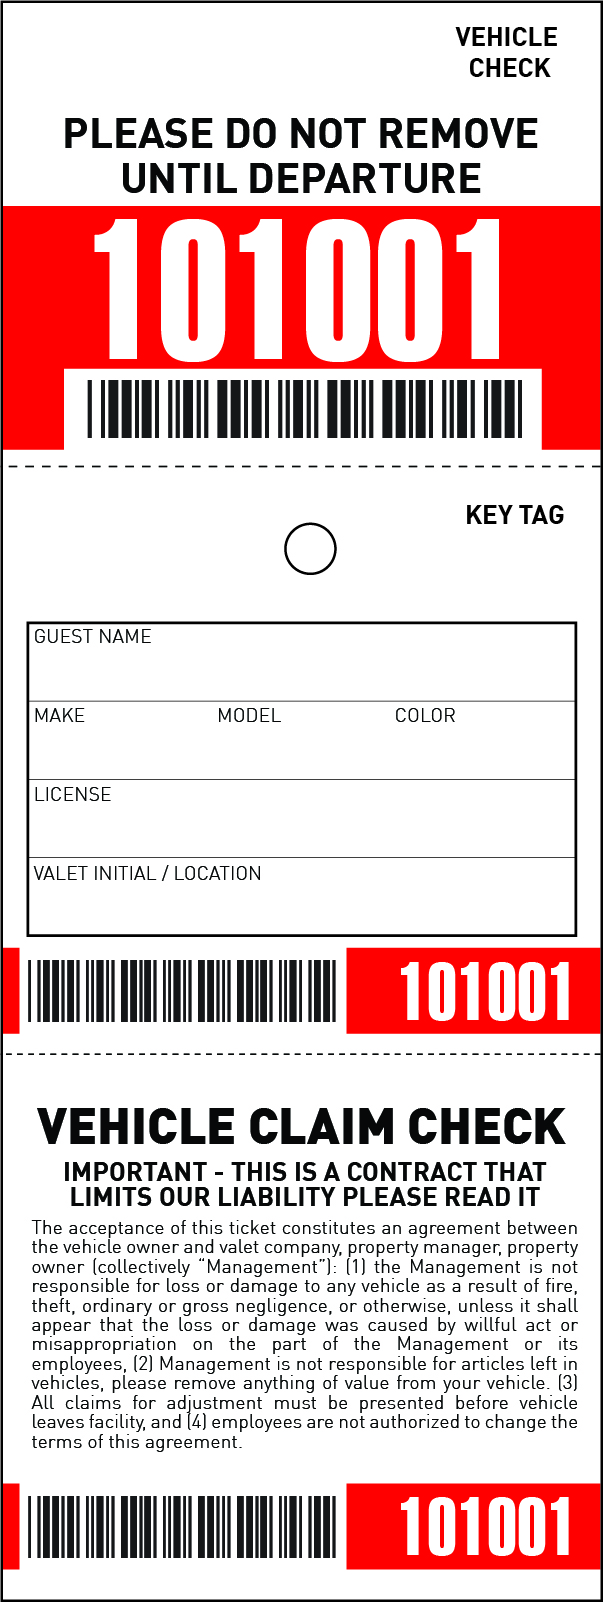 3 Part Barcoded Valet Ticket (3in x 8in)